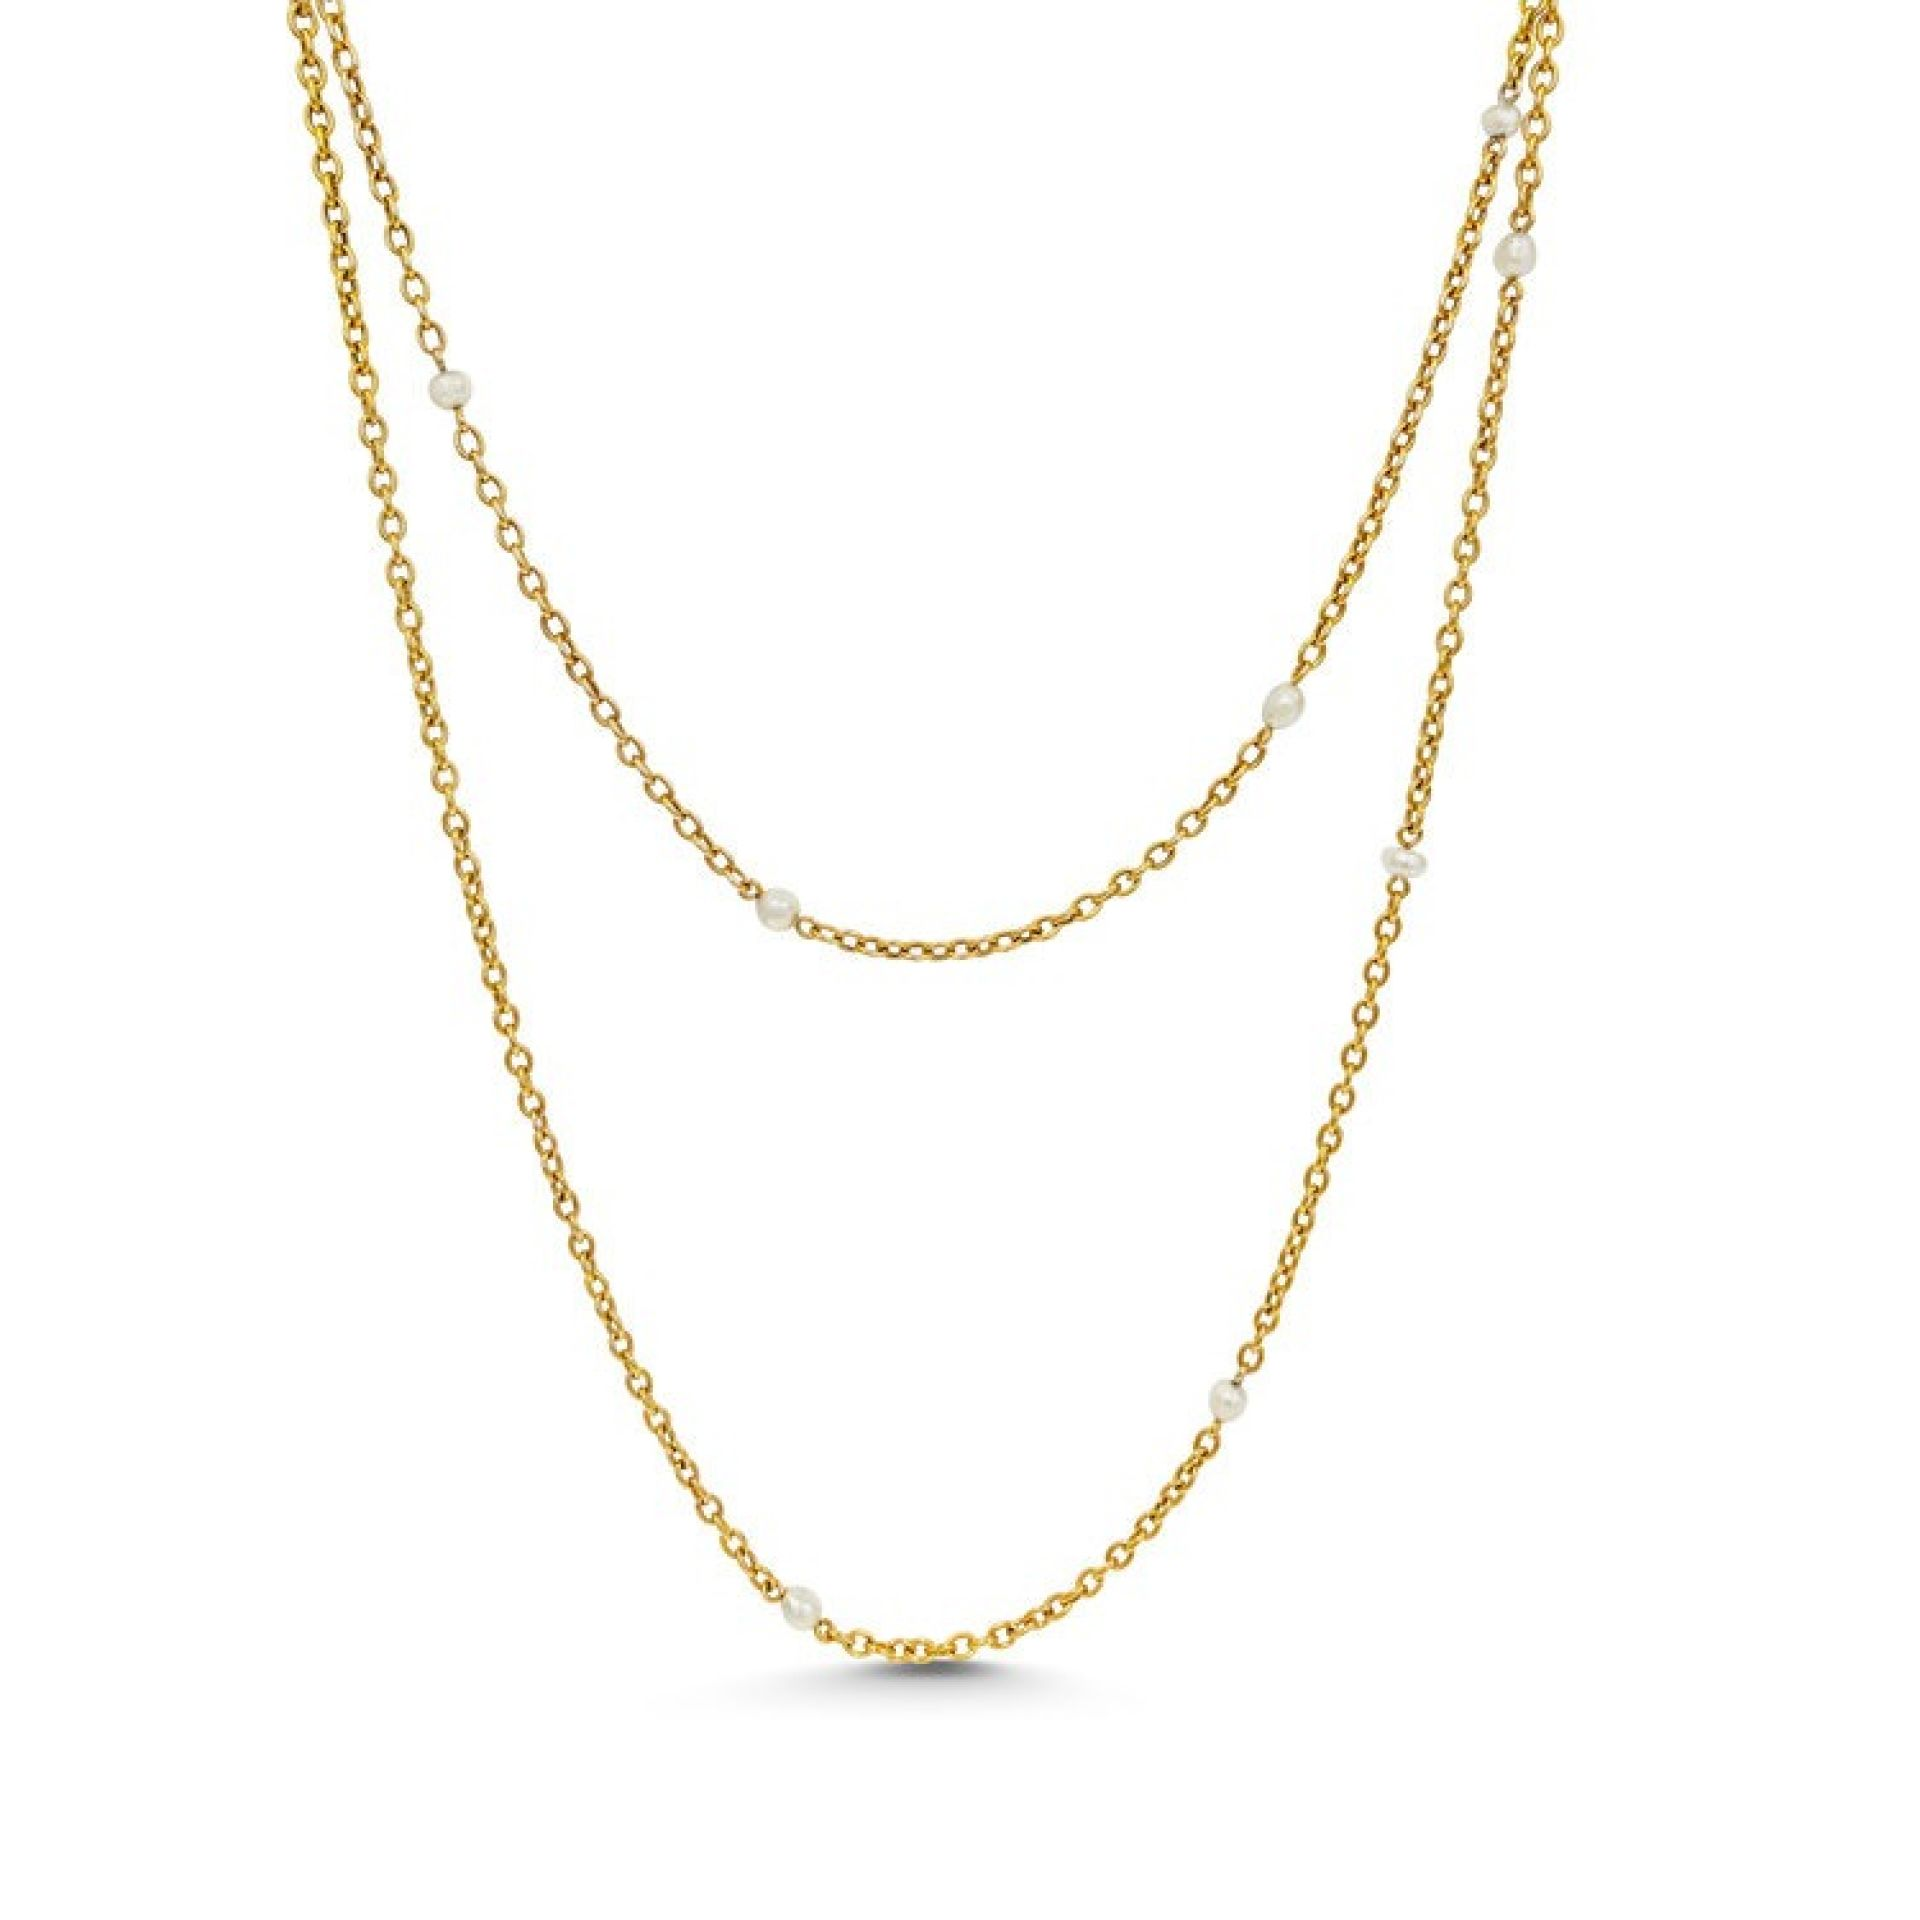 A YELLOW GOLD AND PEARL SAUTOIR